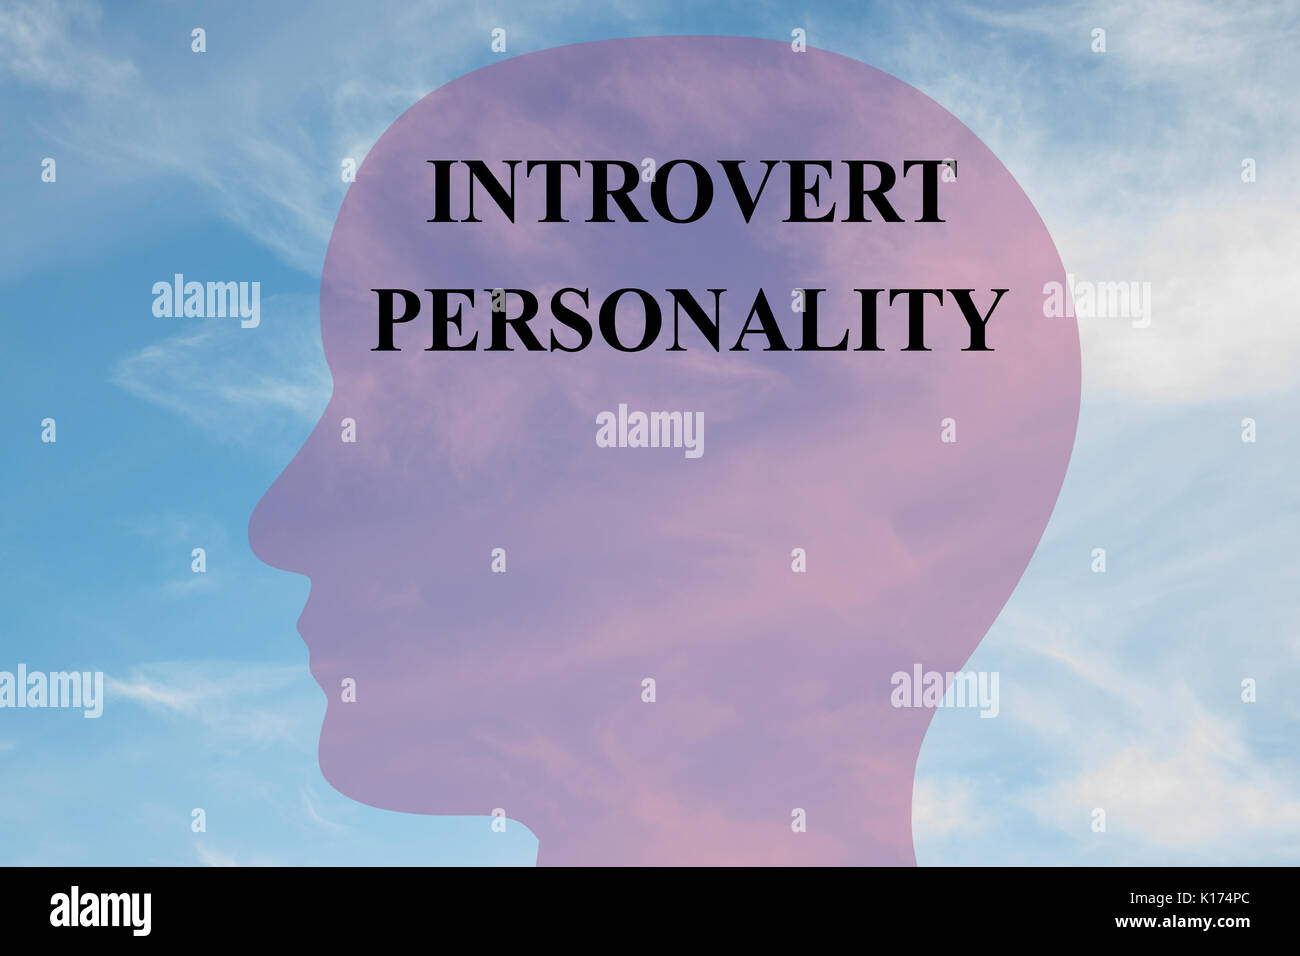 Render illustration of 'INTROVERT PERSONALITY' script on head silhouette, with cloudy sky as a background. - Stock Image